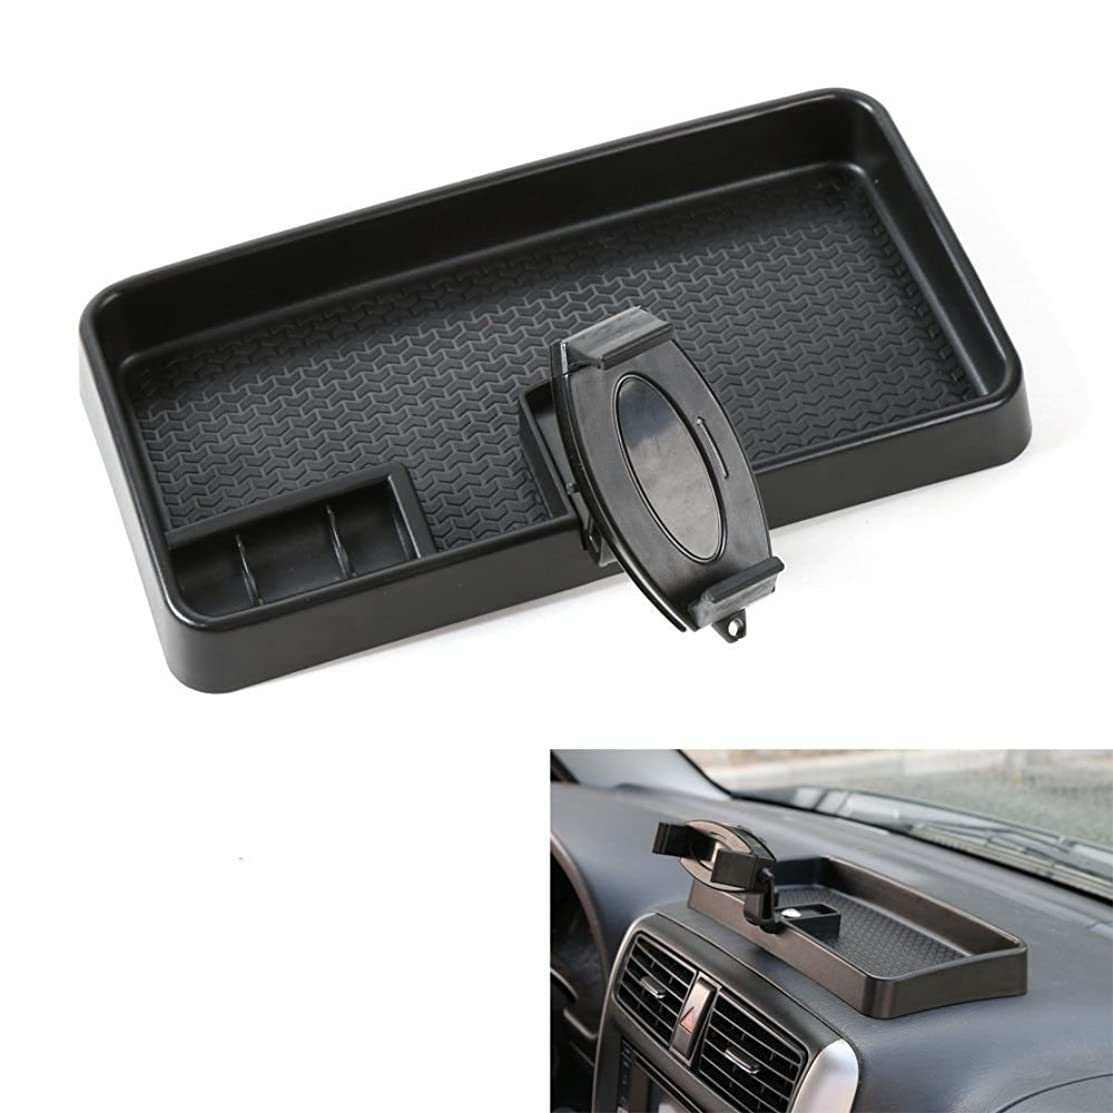 病な平日シーサイドJicorzo - Car Multi-Mount Bracket Mobile Phone GPS Mount Cradle Holder Dashboard Storage Box Card Container For Suzuki Jimny 2007-2016